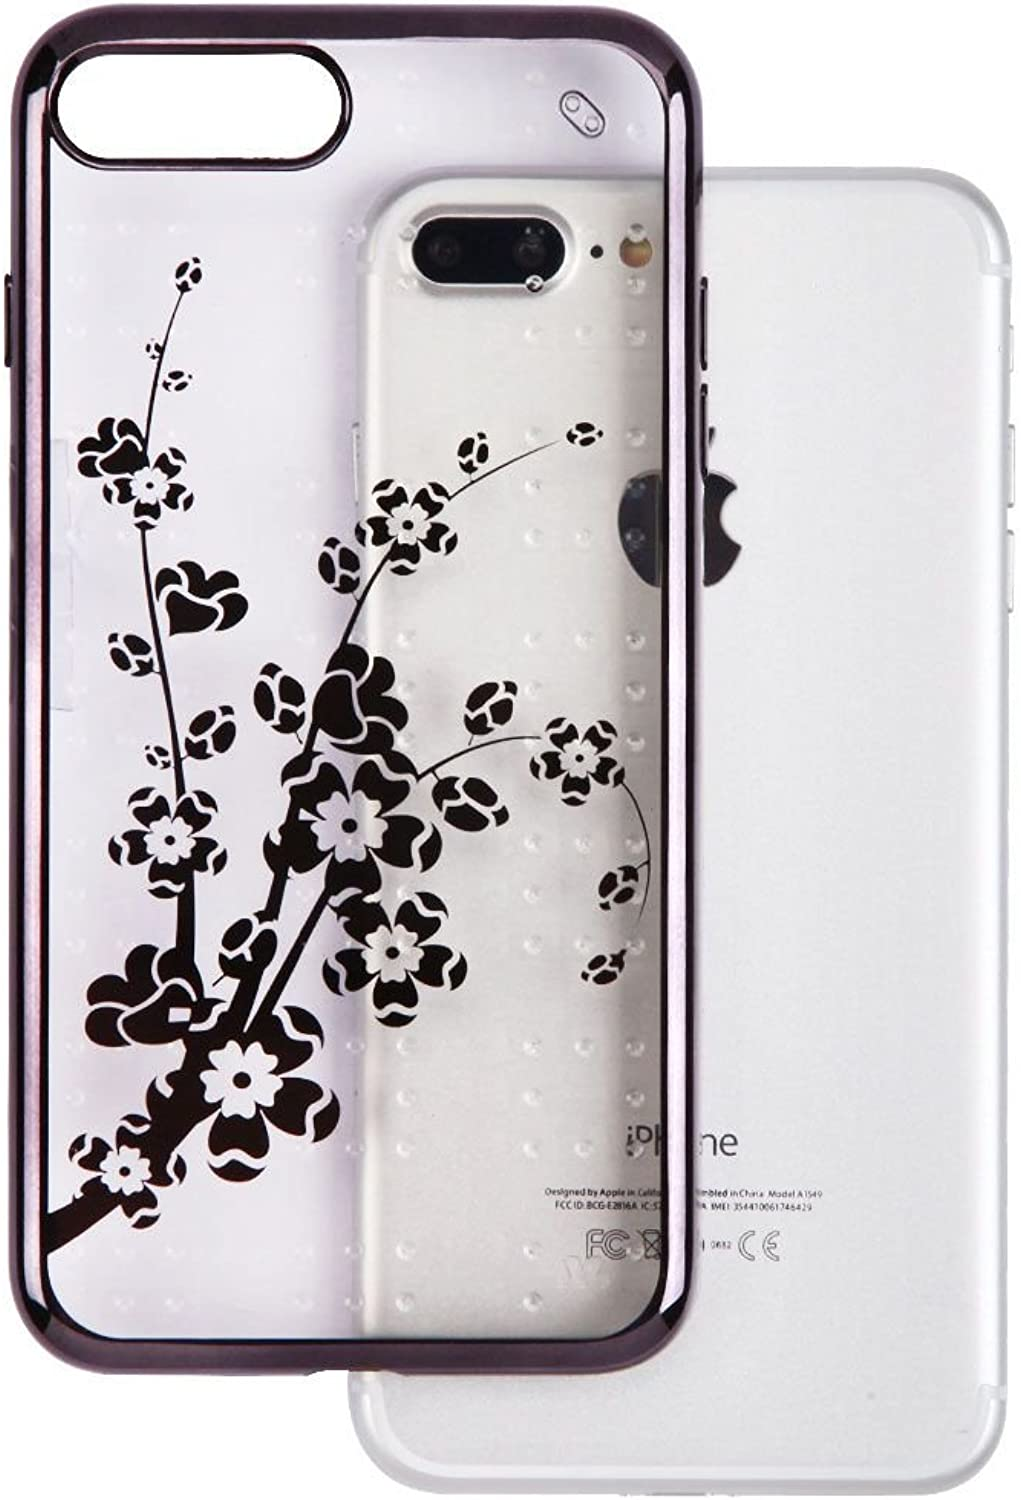 MyBat Spots Electroplated Premium Candy Skin Cover (with Package) for Apple iPhone 7 Plus  Black Glassy Spring Flowers